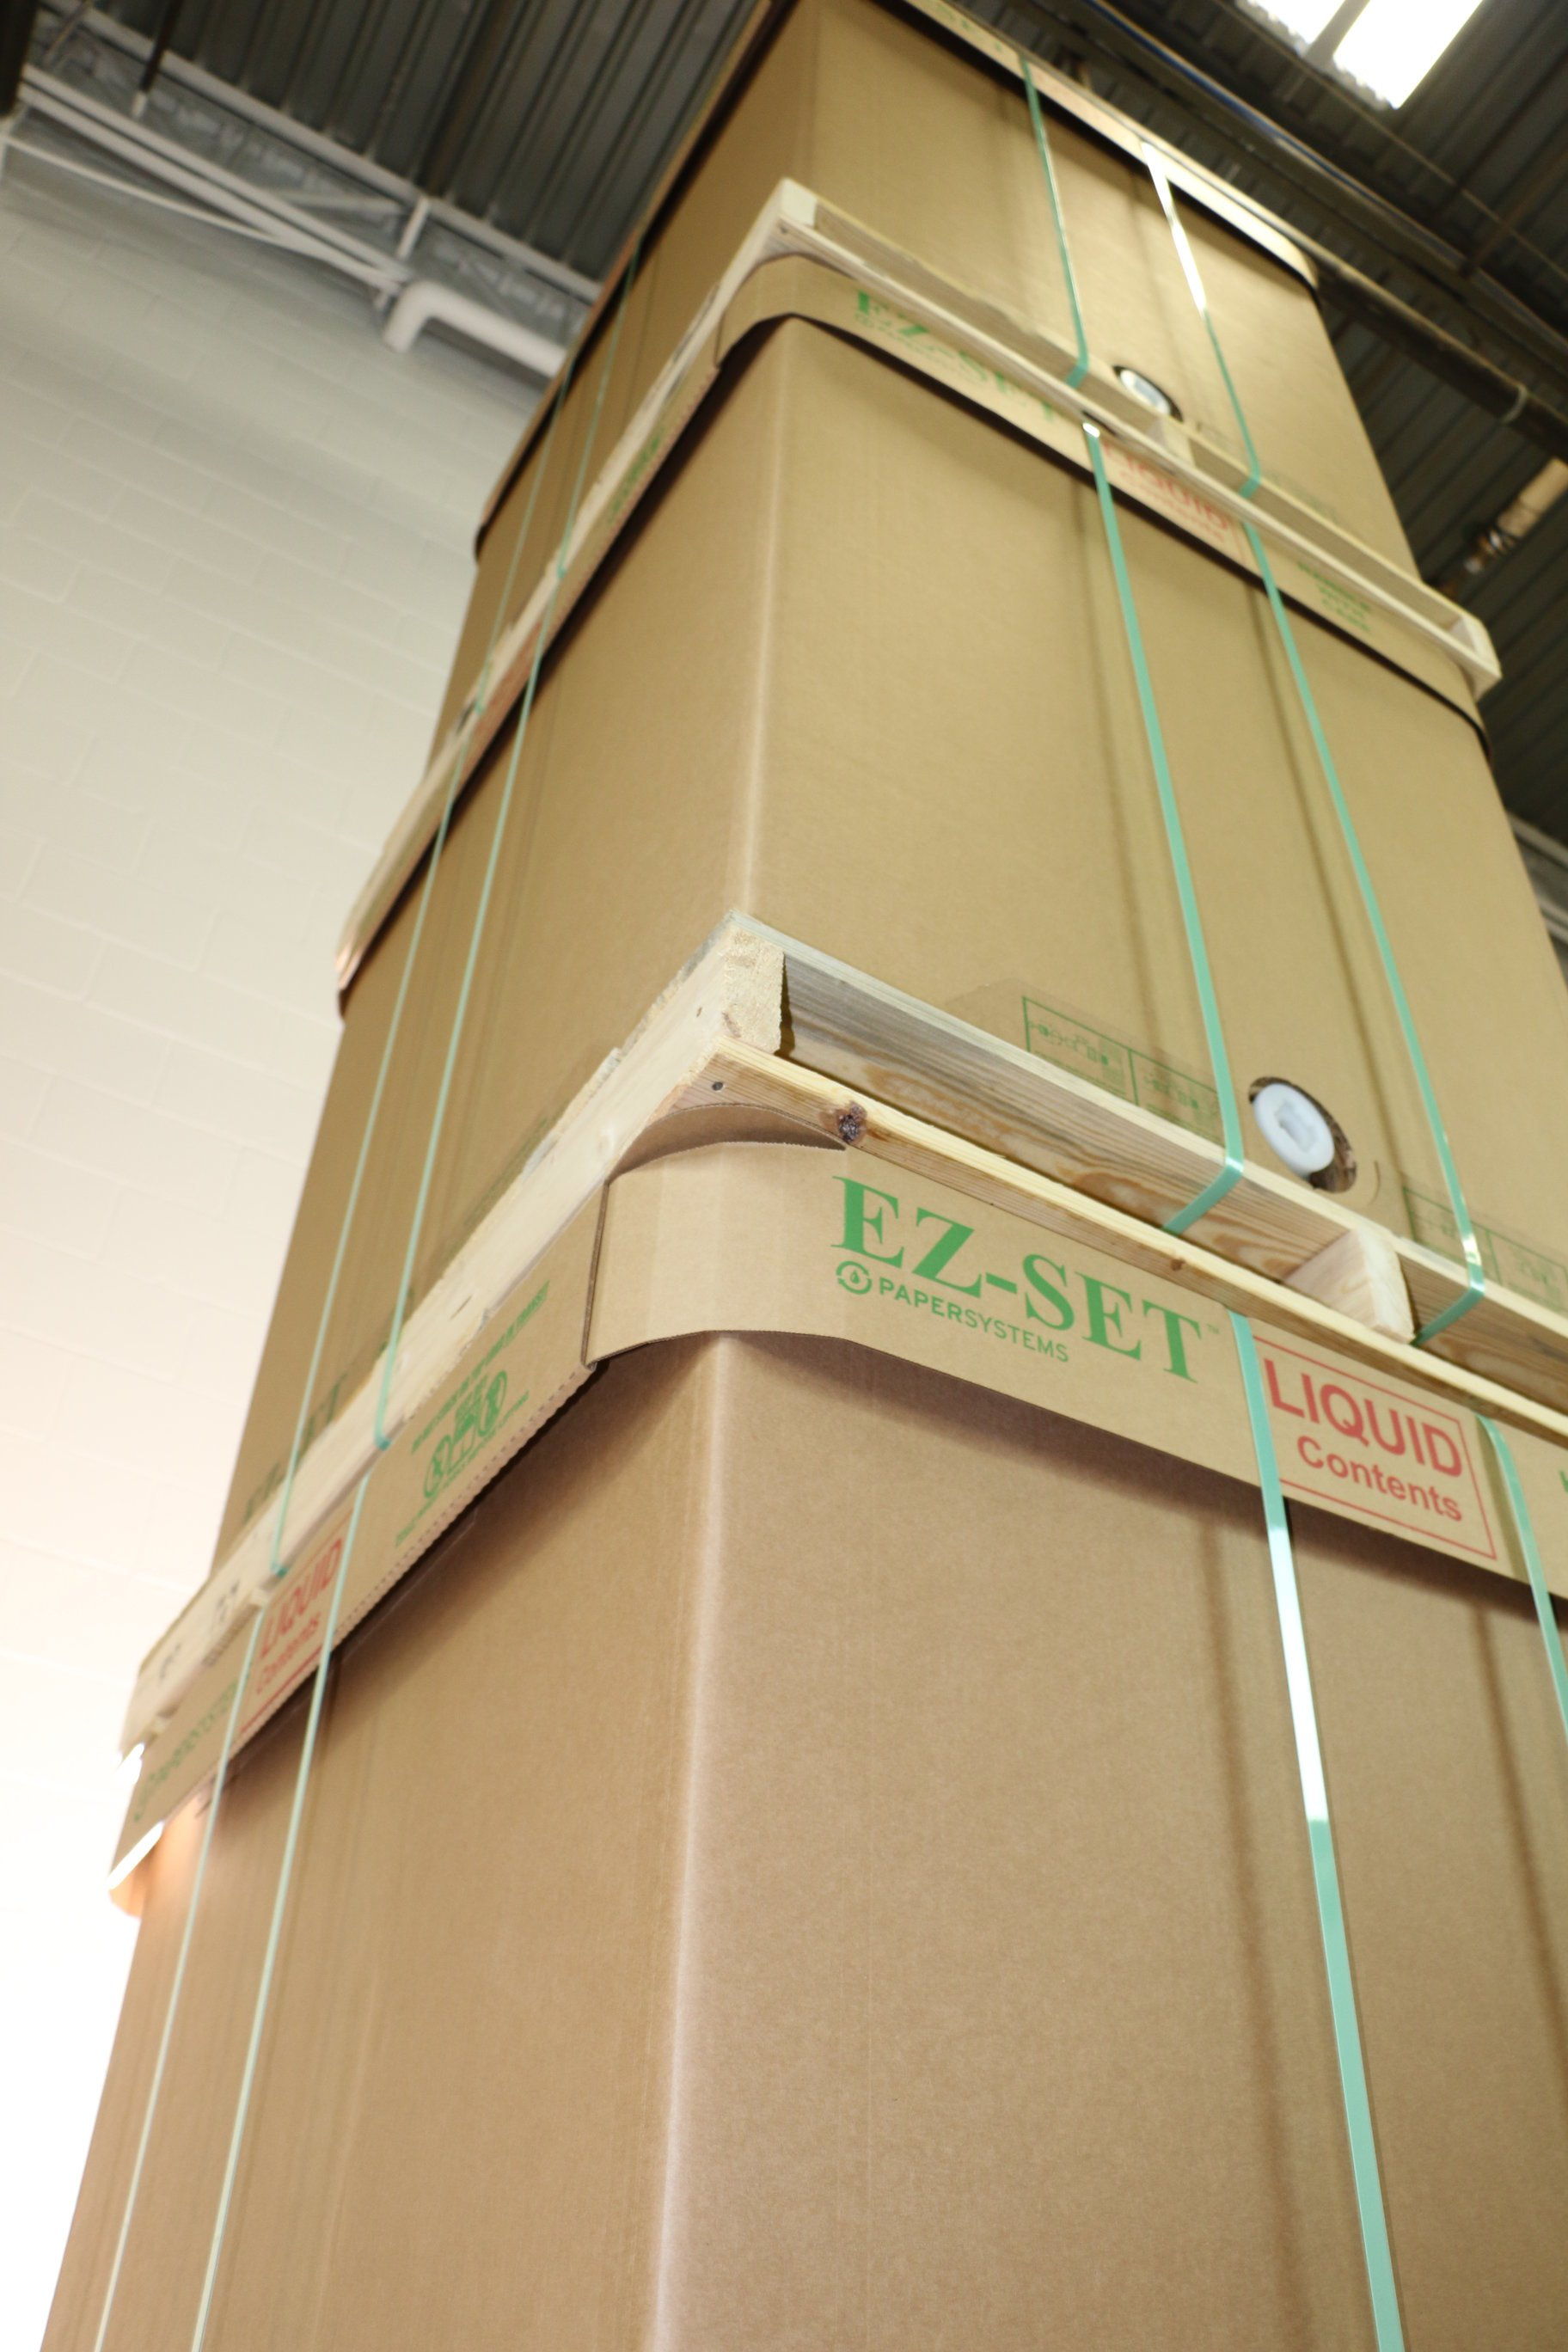 liquid storage totes are safer to move than 55 gallon drums